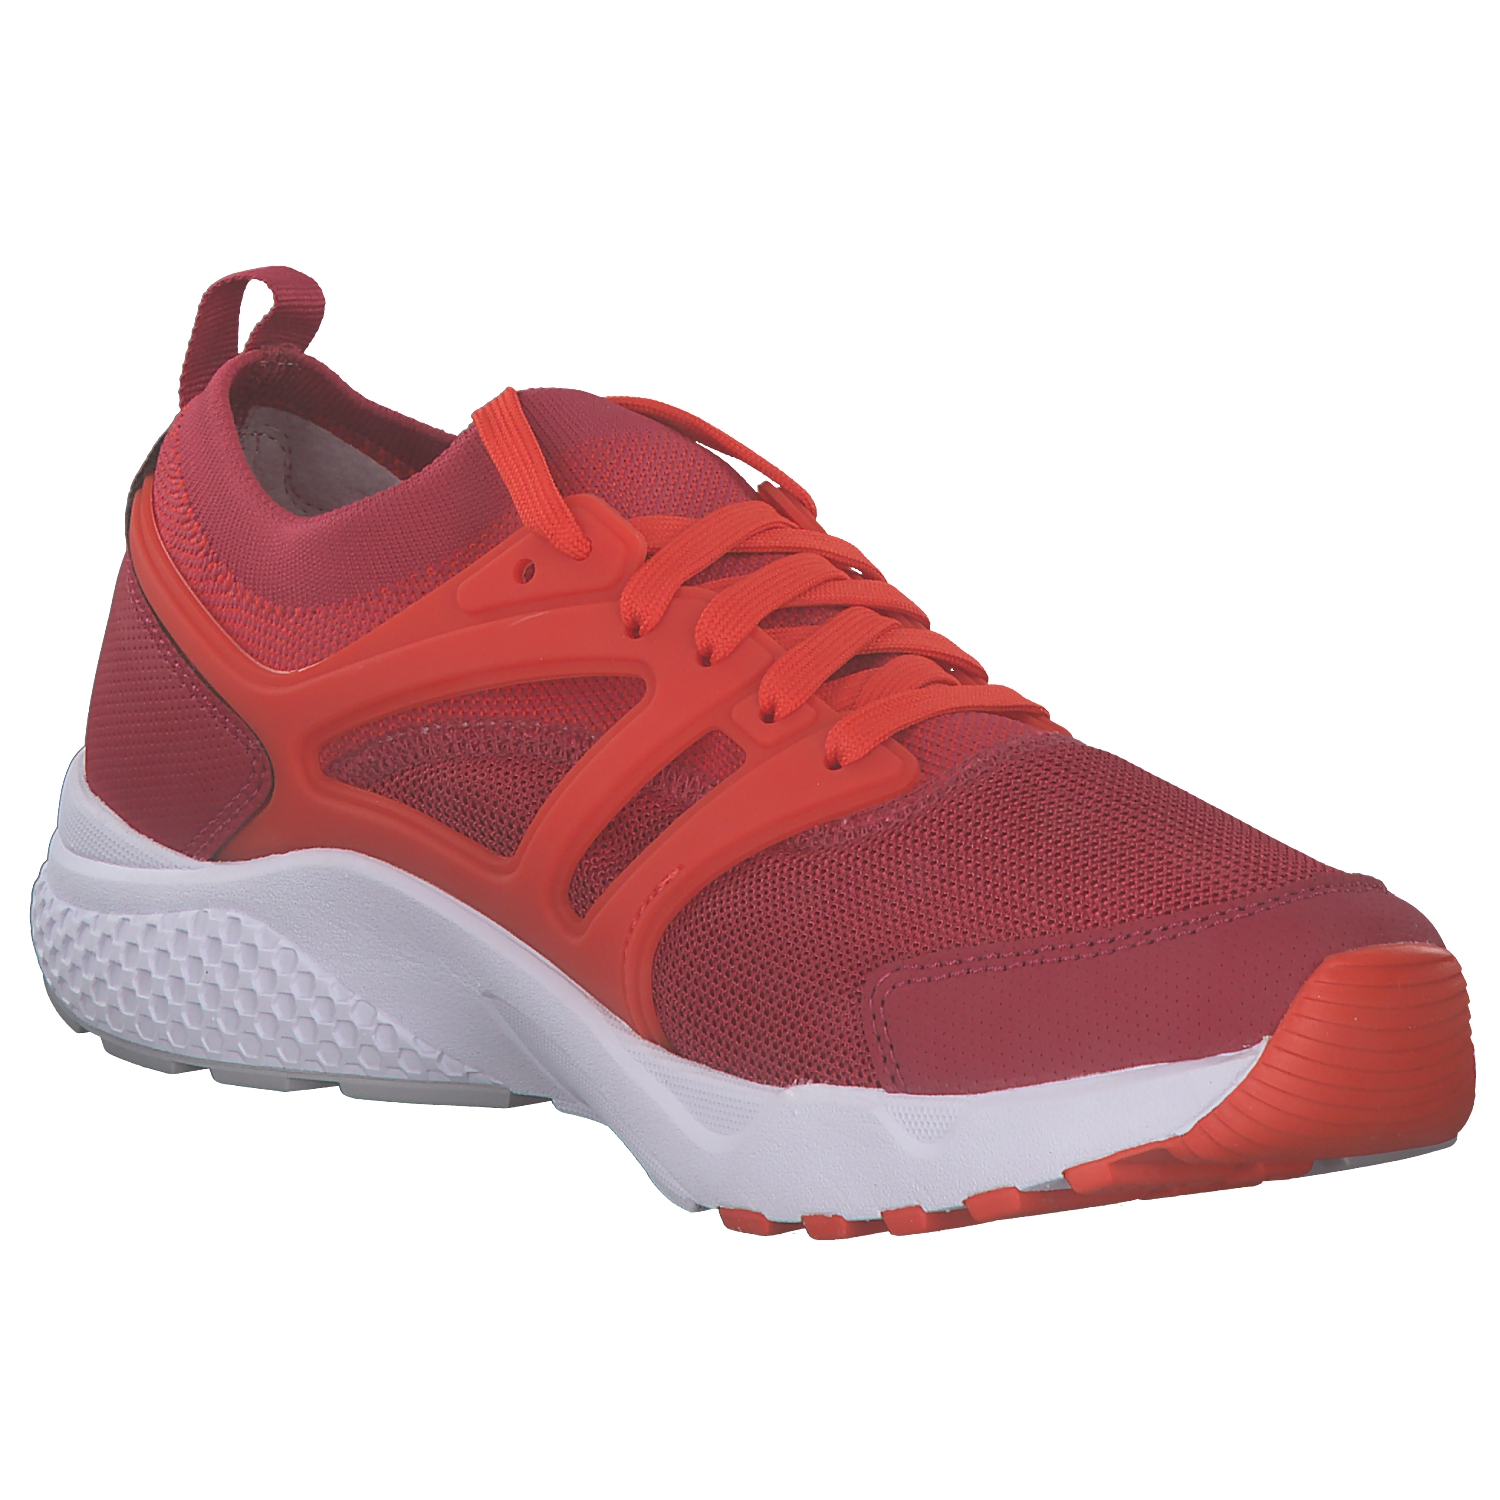 Chaussures Lotto rouges homme QVCfvfp3Hy